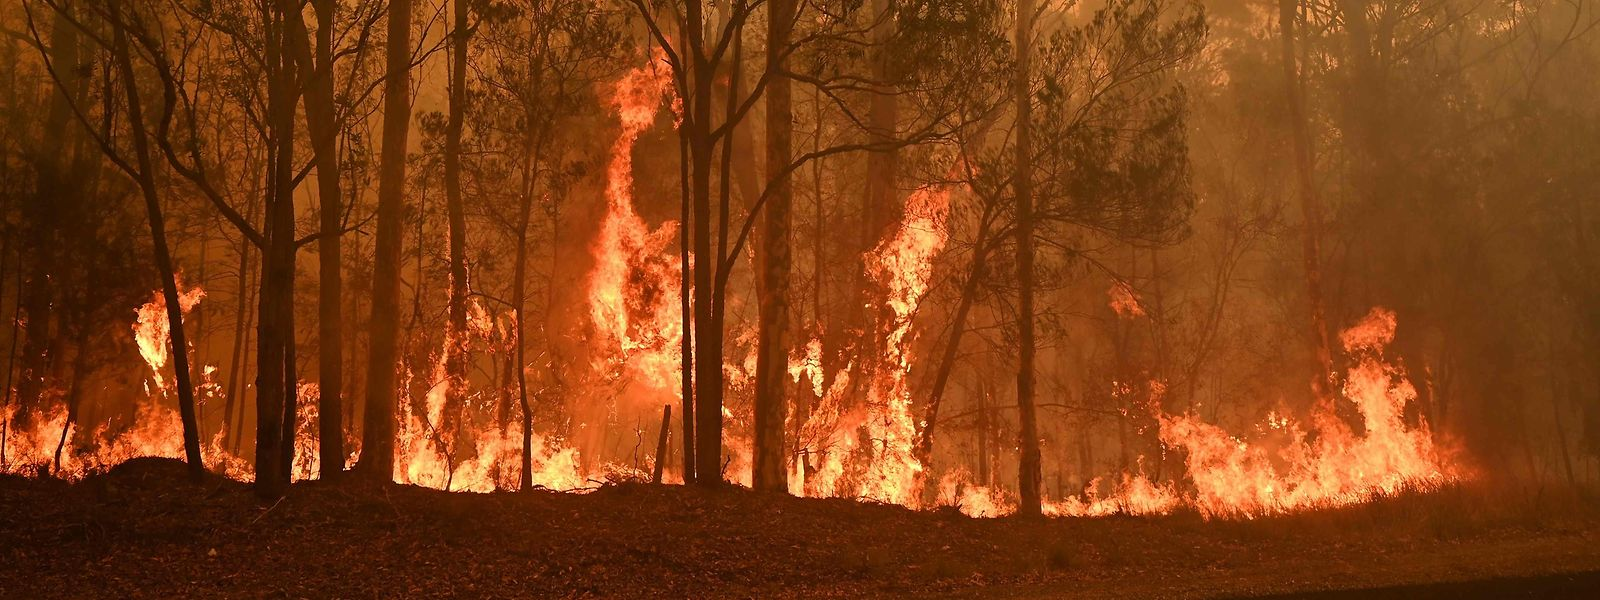 TOPSHOT - A bushfire burns in the town of Moruya, south of Batemans Bay, in New South Wales on January 4, 2020. - Up to 3,000 military reservists were called up to tackle Australia's relentless bushfire crisis on January 4, as tens of thousands of residents fled their homes amid catastrophic conditions. (Photo by PETER PARKS / AFP)